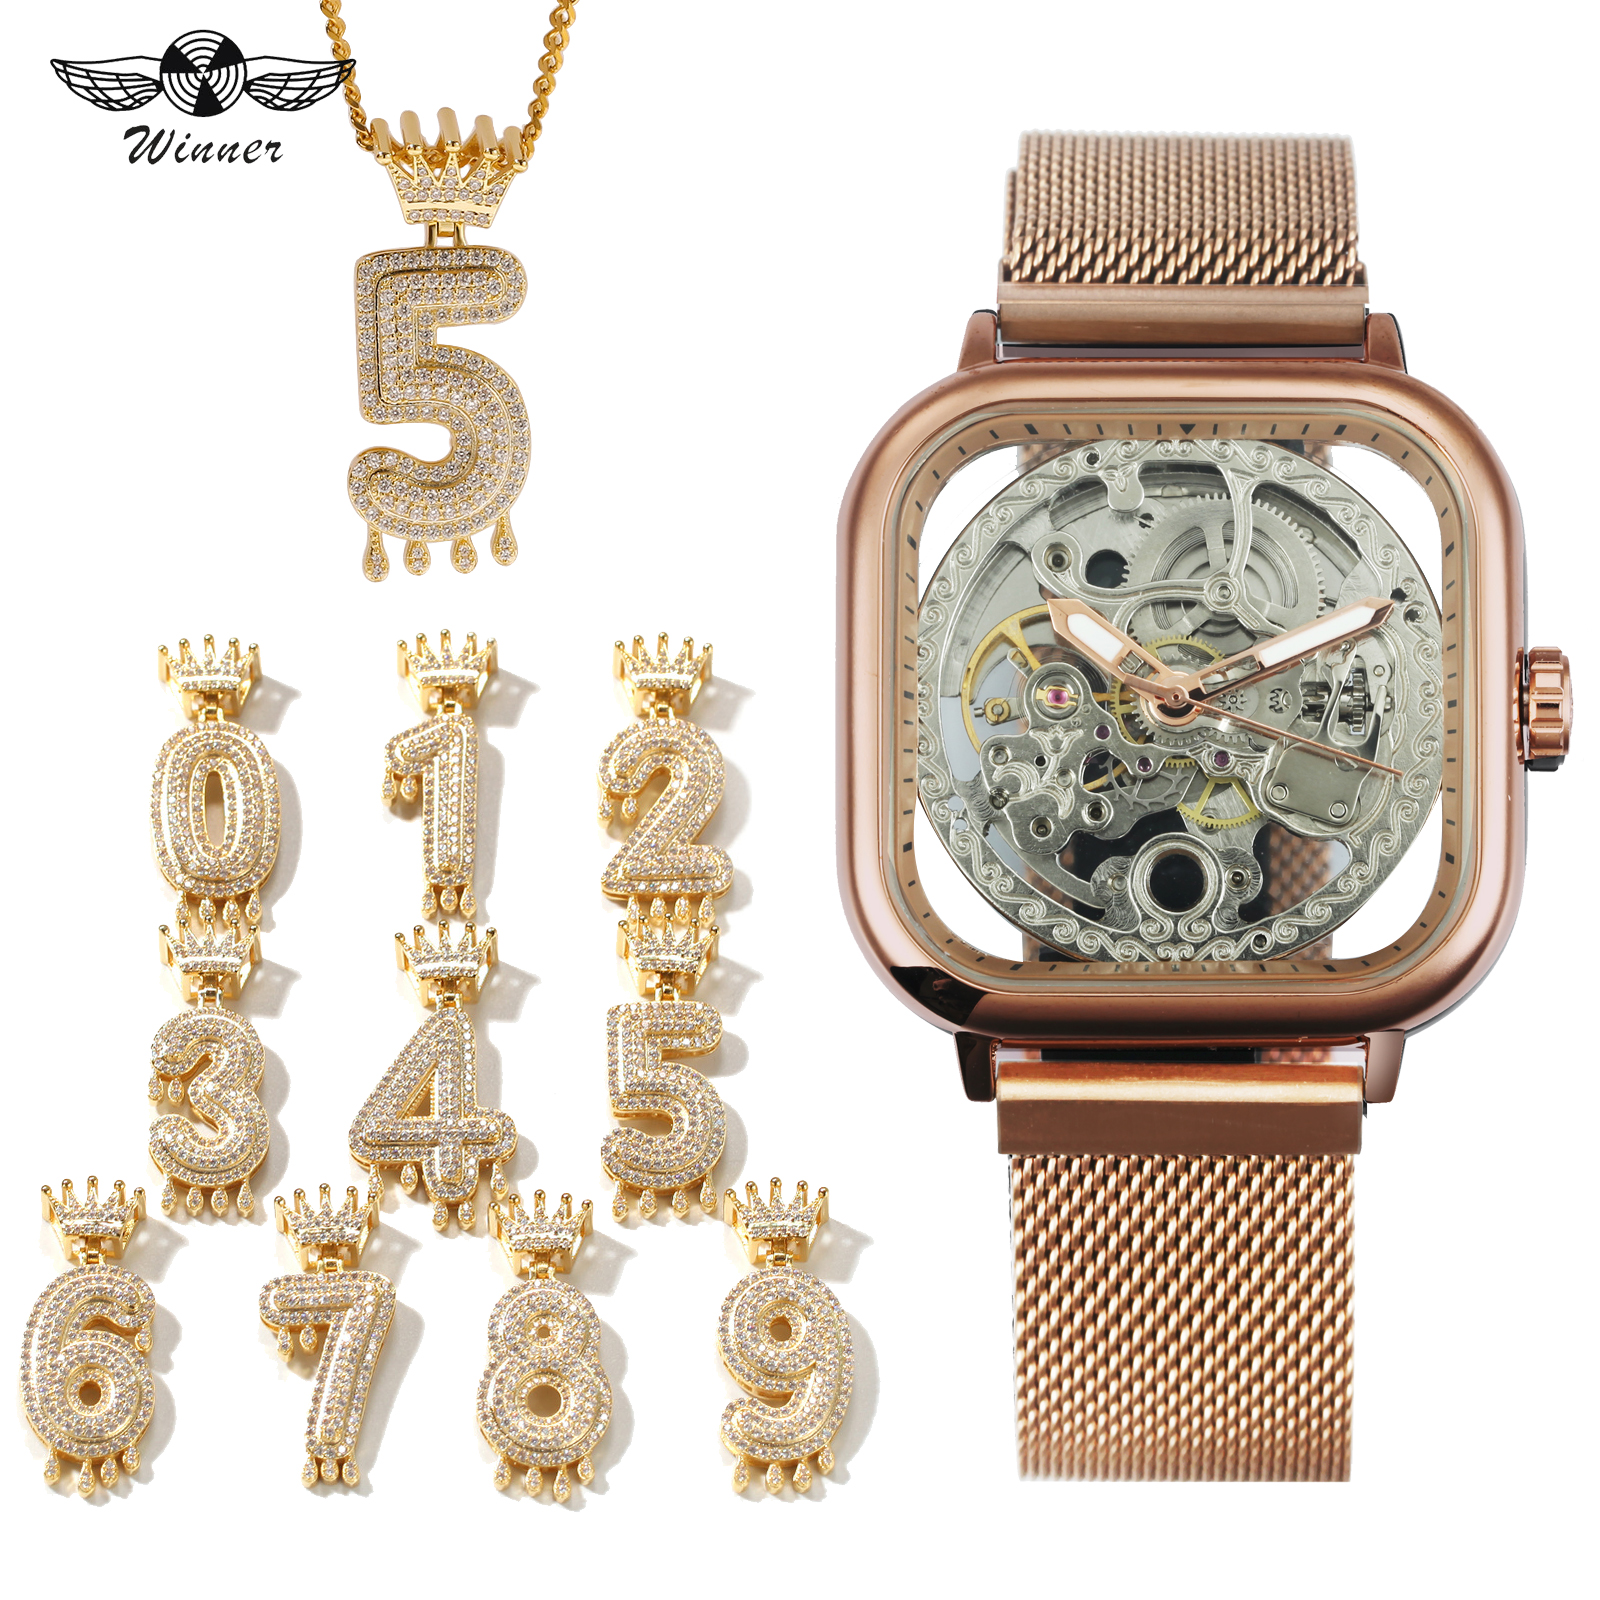 WINNER Mens Watches Top Brand Luxury Punk Jewelry Set Hip Hop Auto Mechanical Wristwatch + Crown Number Iced Out NecklaceWINNER Mens Watches Top Brand Luxury Punk Jewelry Set Hip Hop Auto Mechanical Wristwatch + Crown Number Iced Out Necklace